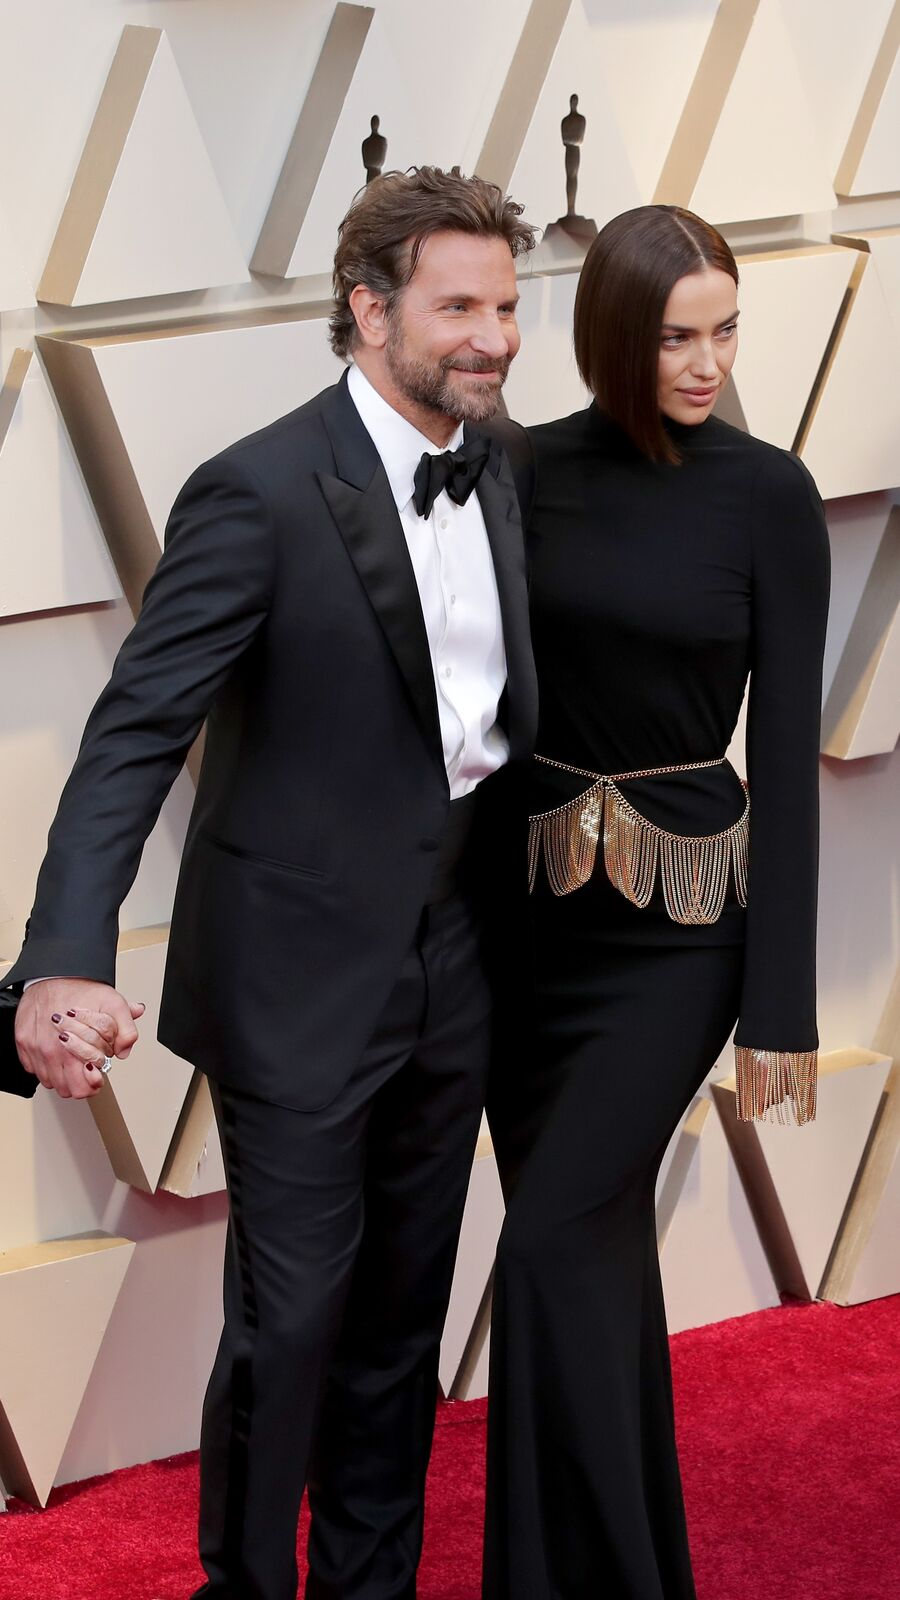 Bradley Cooper und Irina Shayk am 24. Februar 2019 in Hollywood, Kalifornien | Quelle: Getty Images